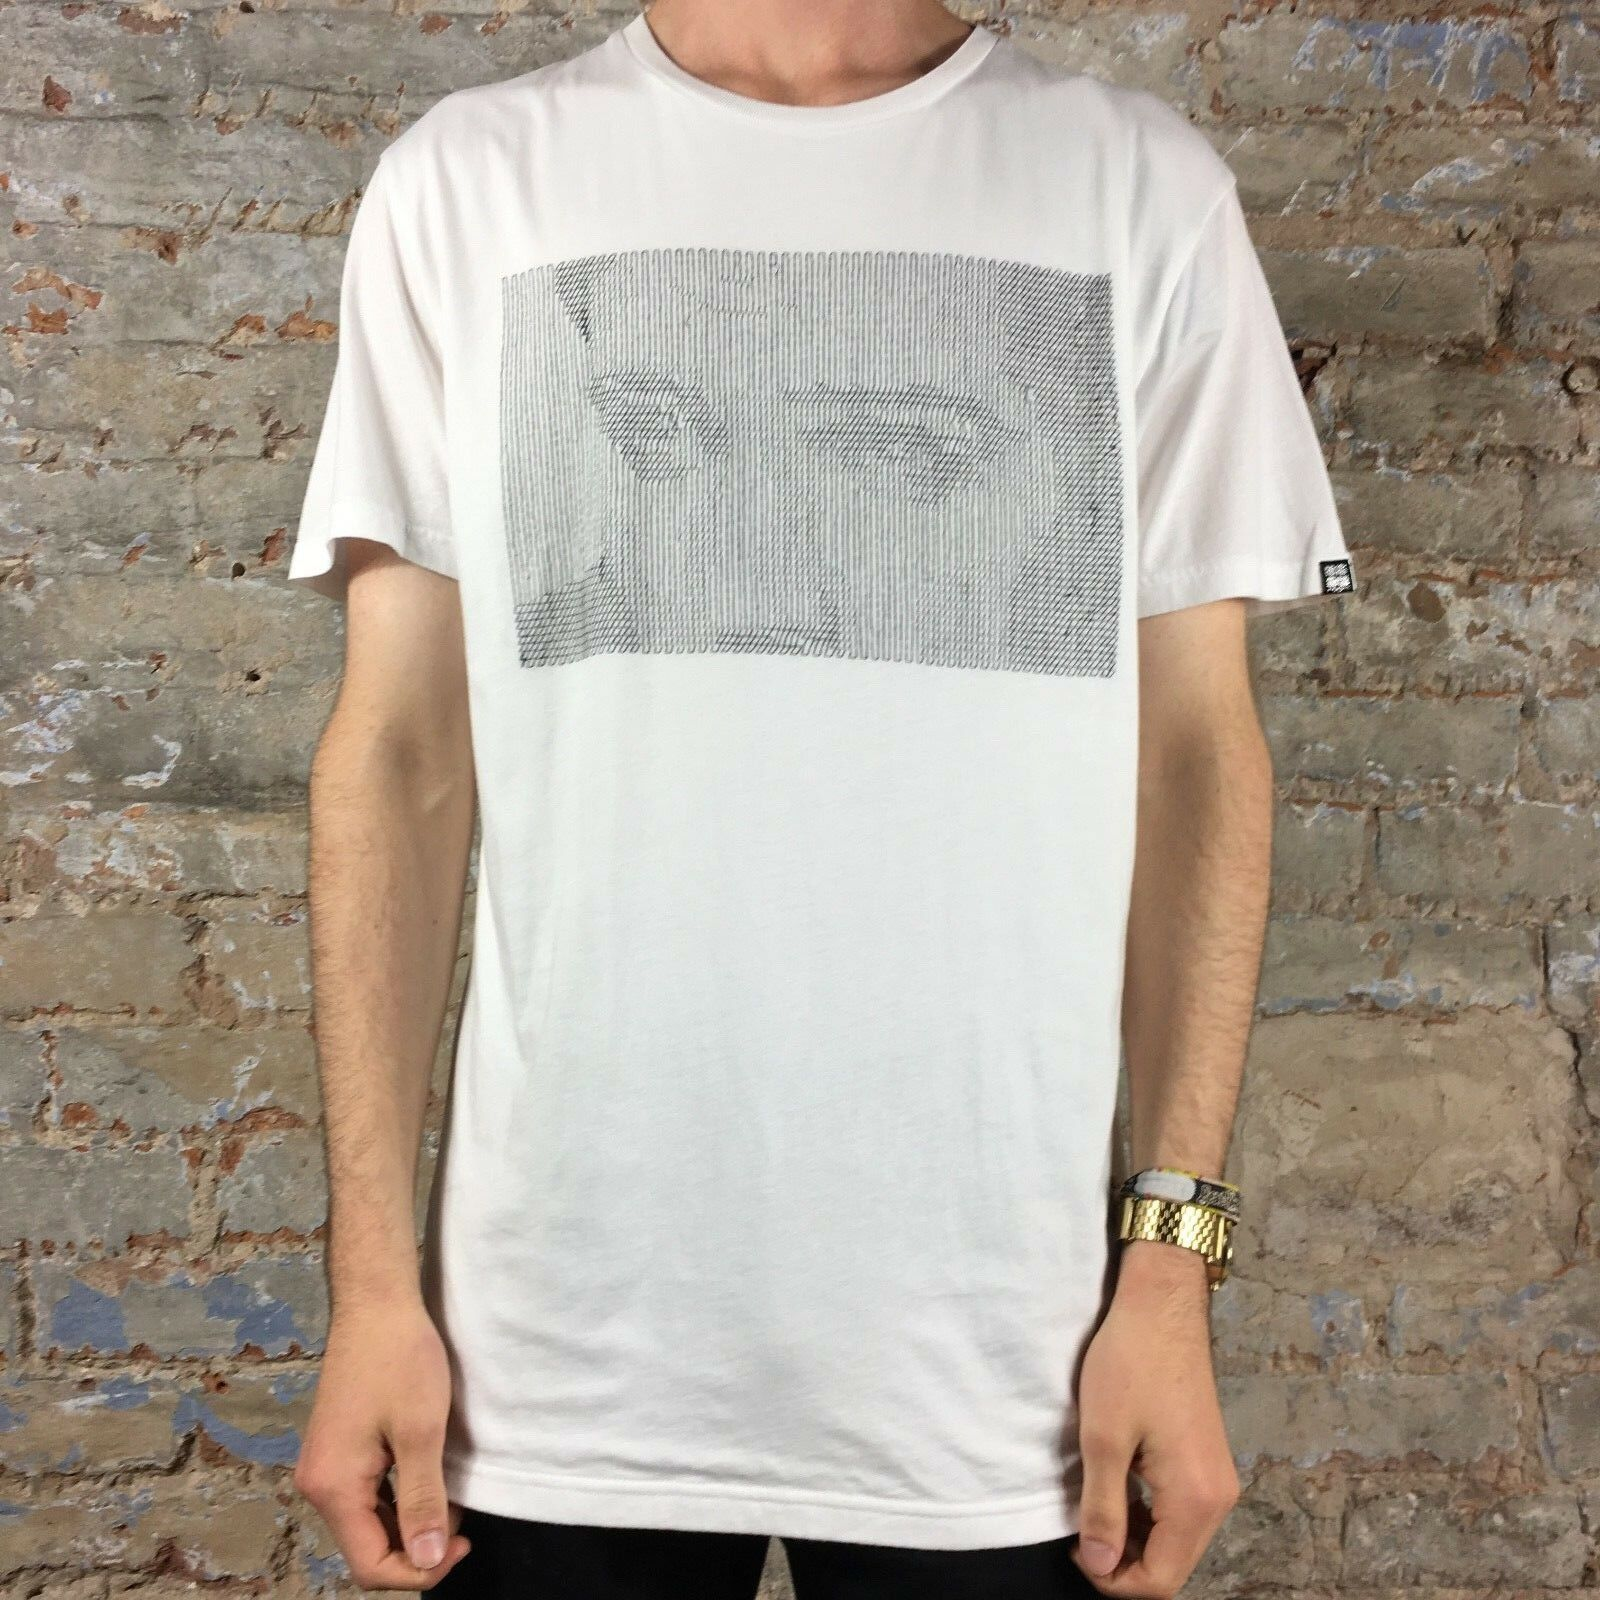 Details about Insight Suspicious Minds Tee T Shirt Brand New Size: S,M White